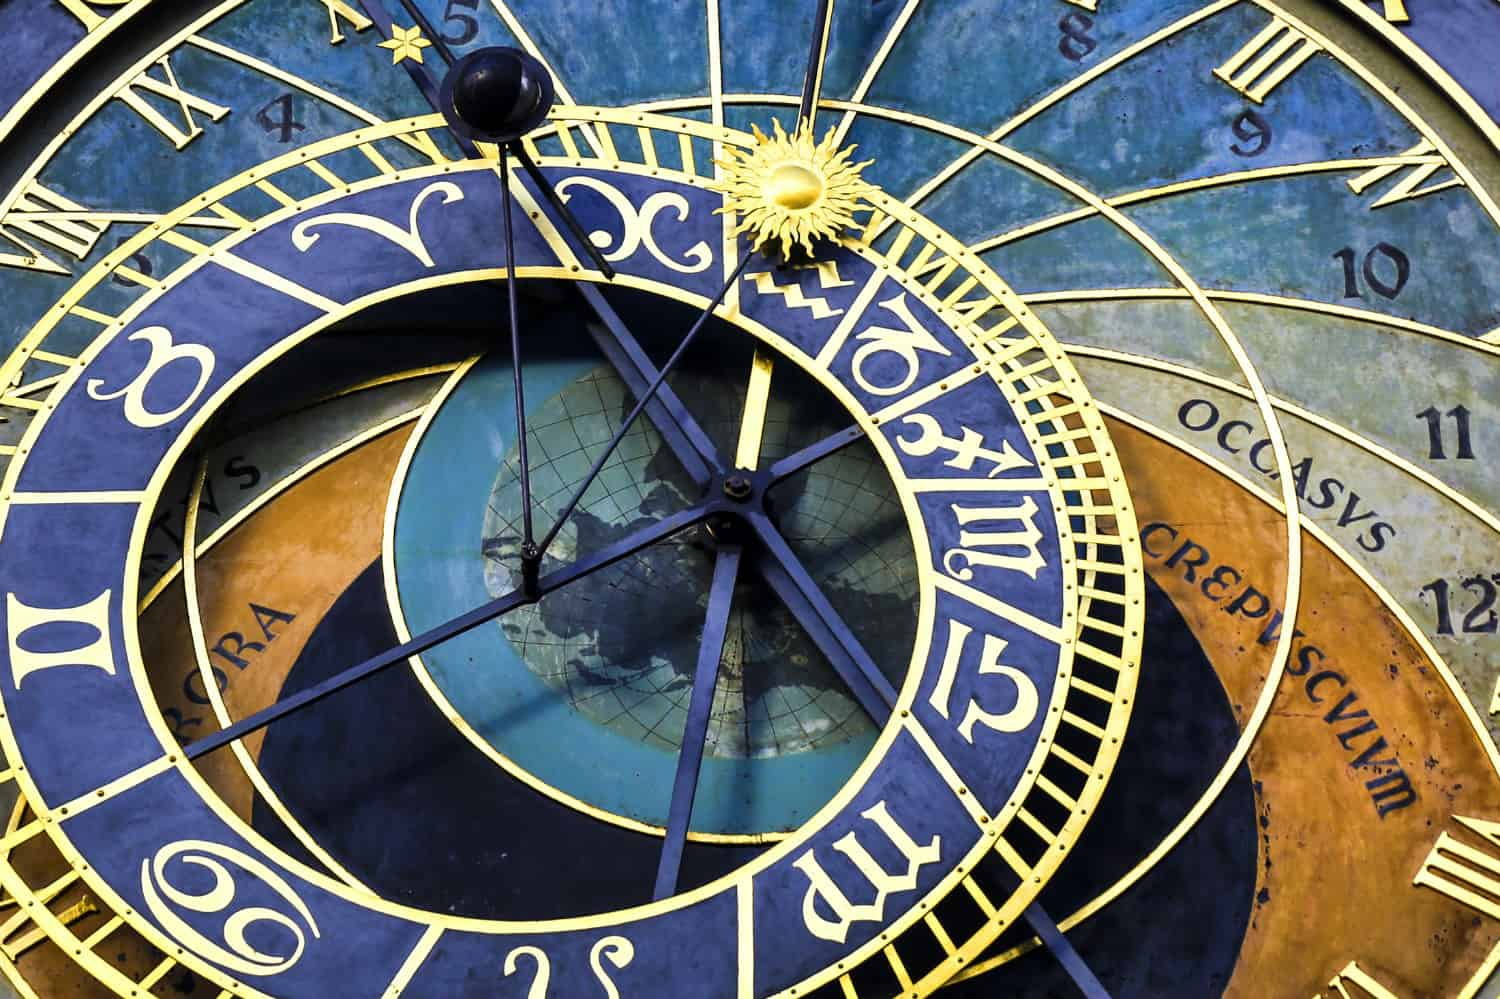 Prague to Remove America from Astronomical Clock?